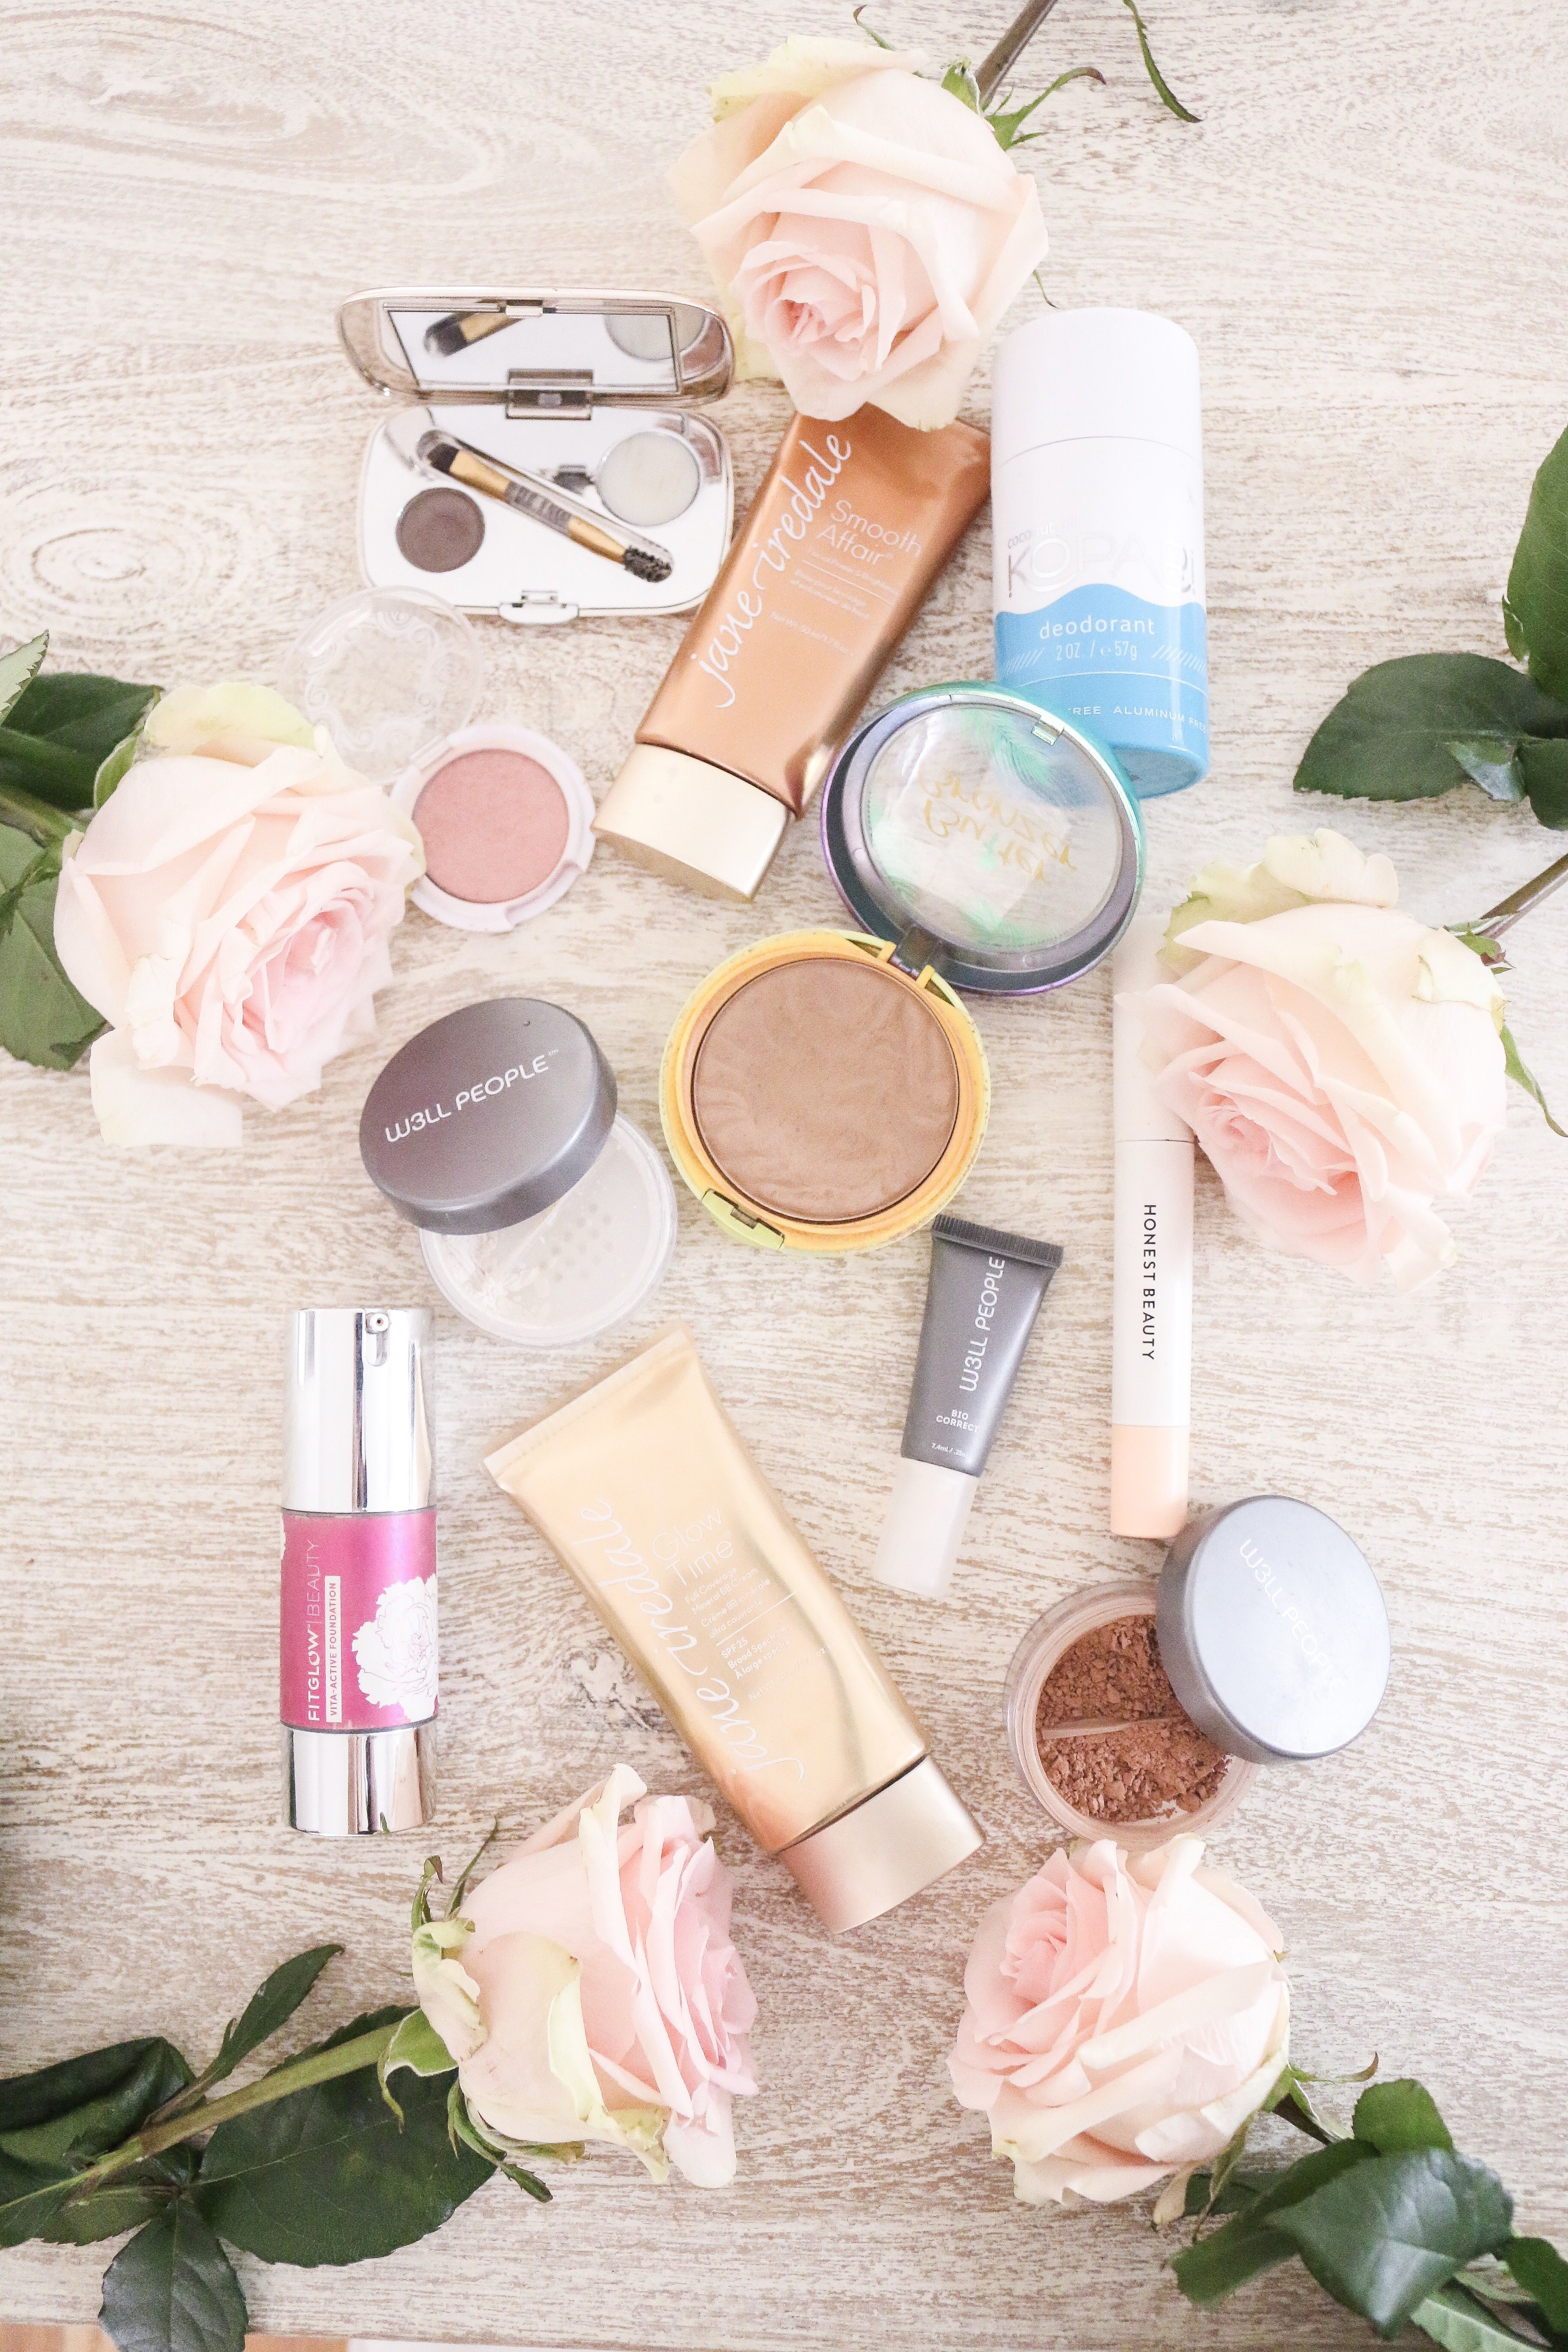 My Favorite Non Toxic Makeup A Darling Daydream